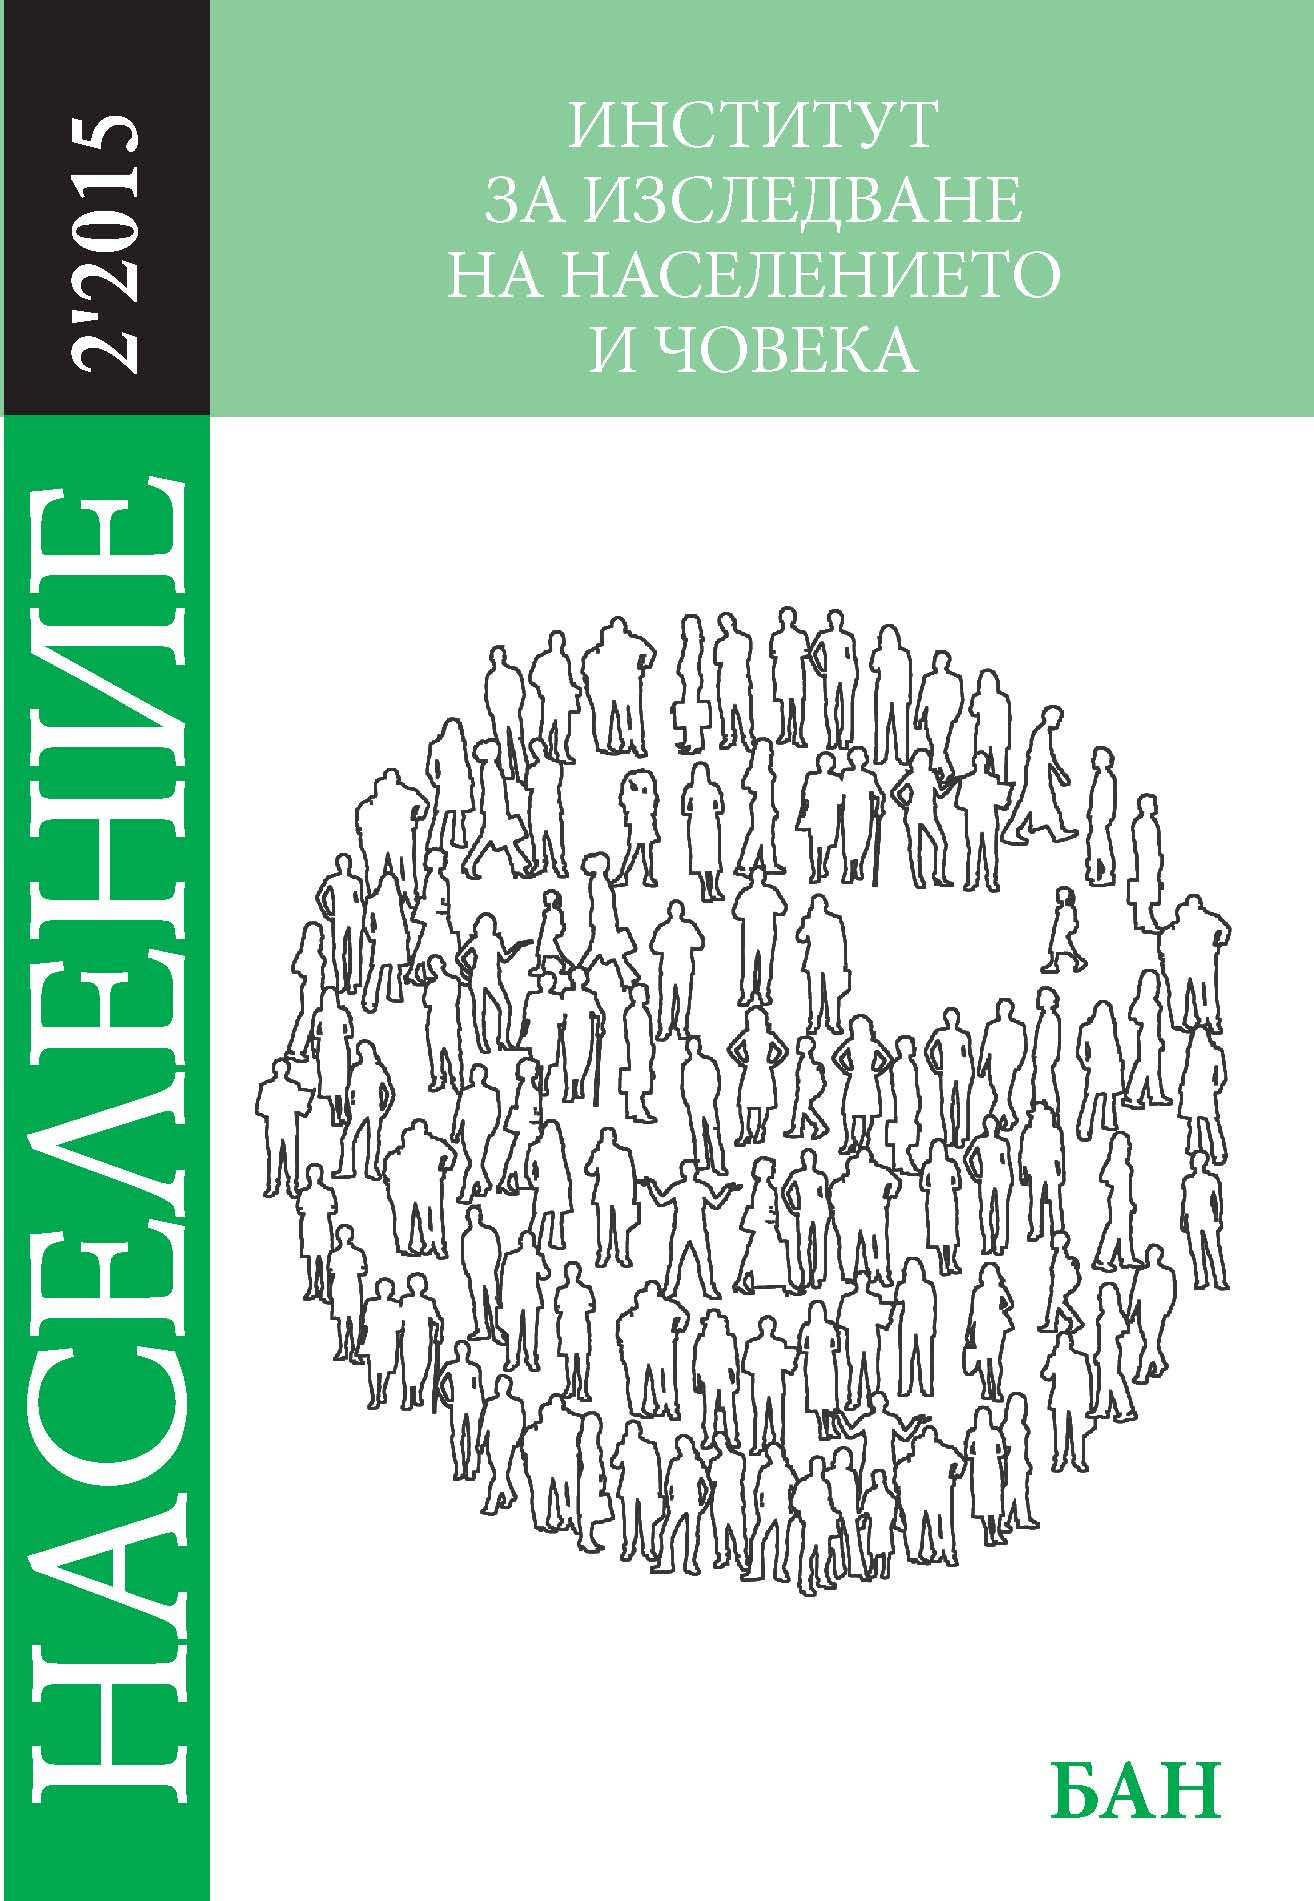 Spatial Imbalances in the Age Migration Growth of the Population of the Republic of Bulgaria Cover Image